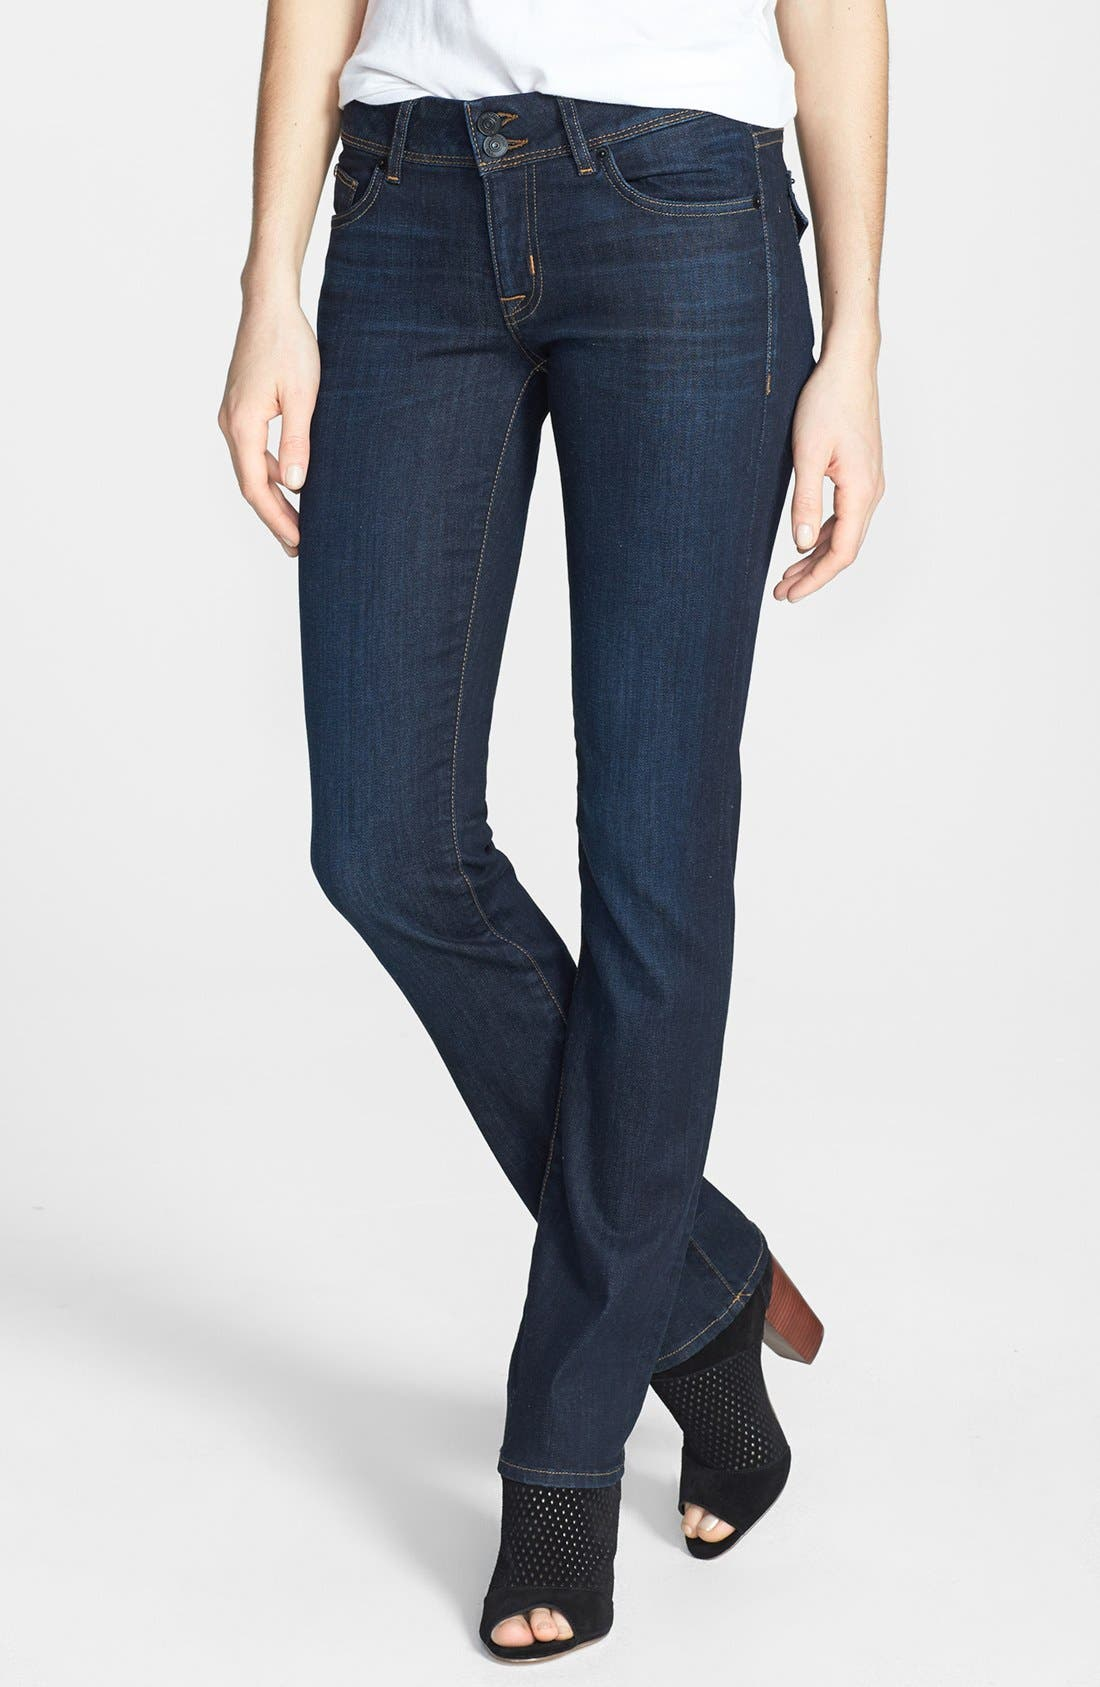 Alternate Image 1 Selected - Hudson Jeans 'Ginny' Straight Leg Jeans (London Calling)